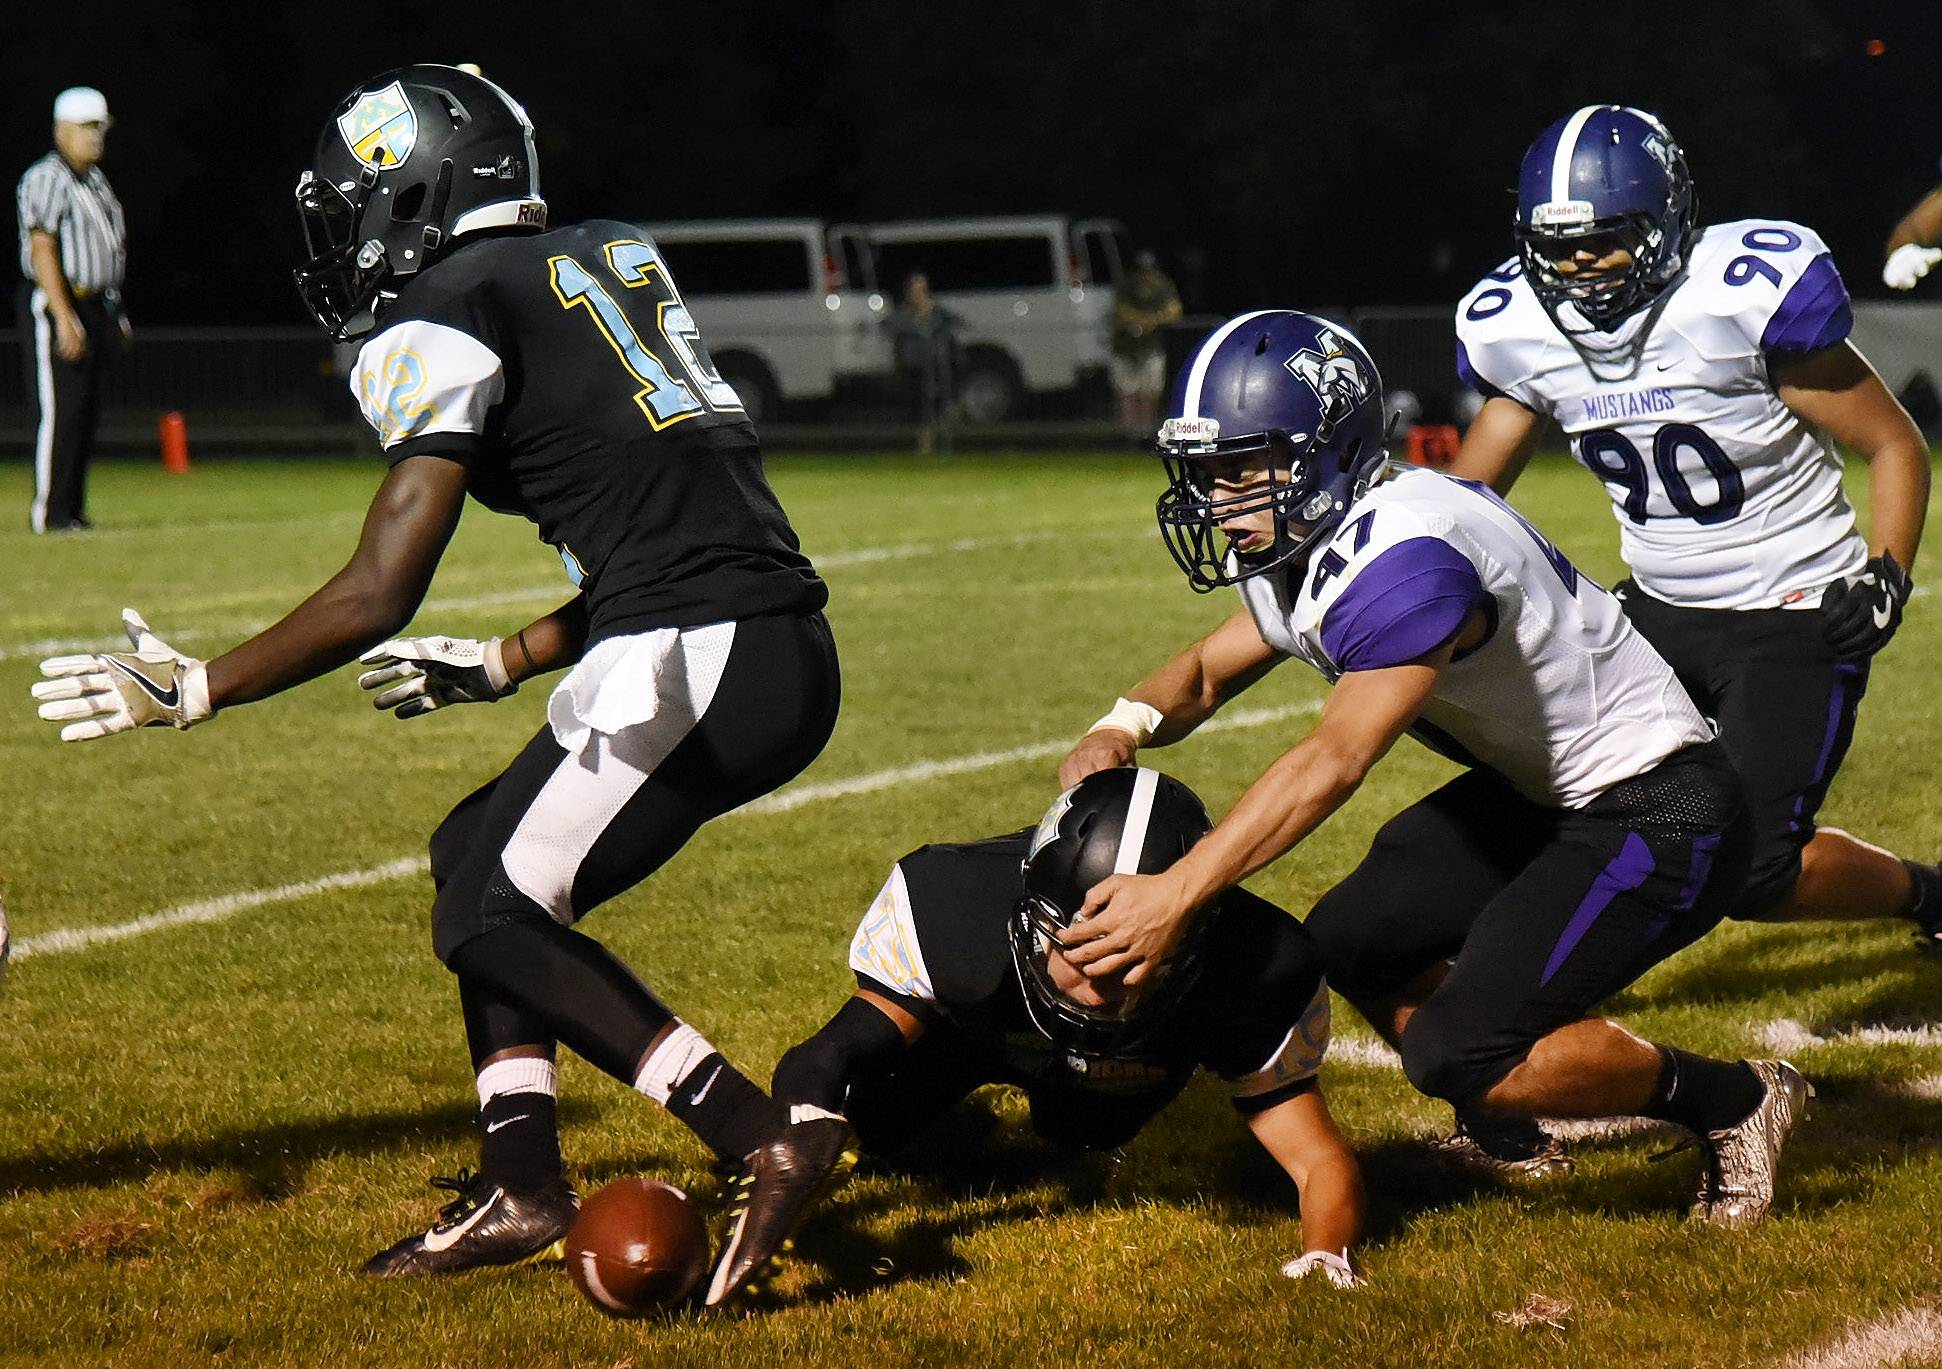 Maine West's Rafael Ynocencio tries to recover a fumble as the ball rolls out of bounds in first half against visiting Rolling Meadows on Friday.